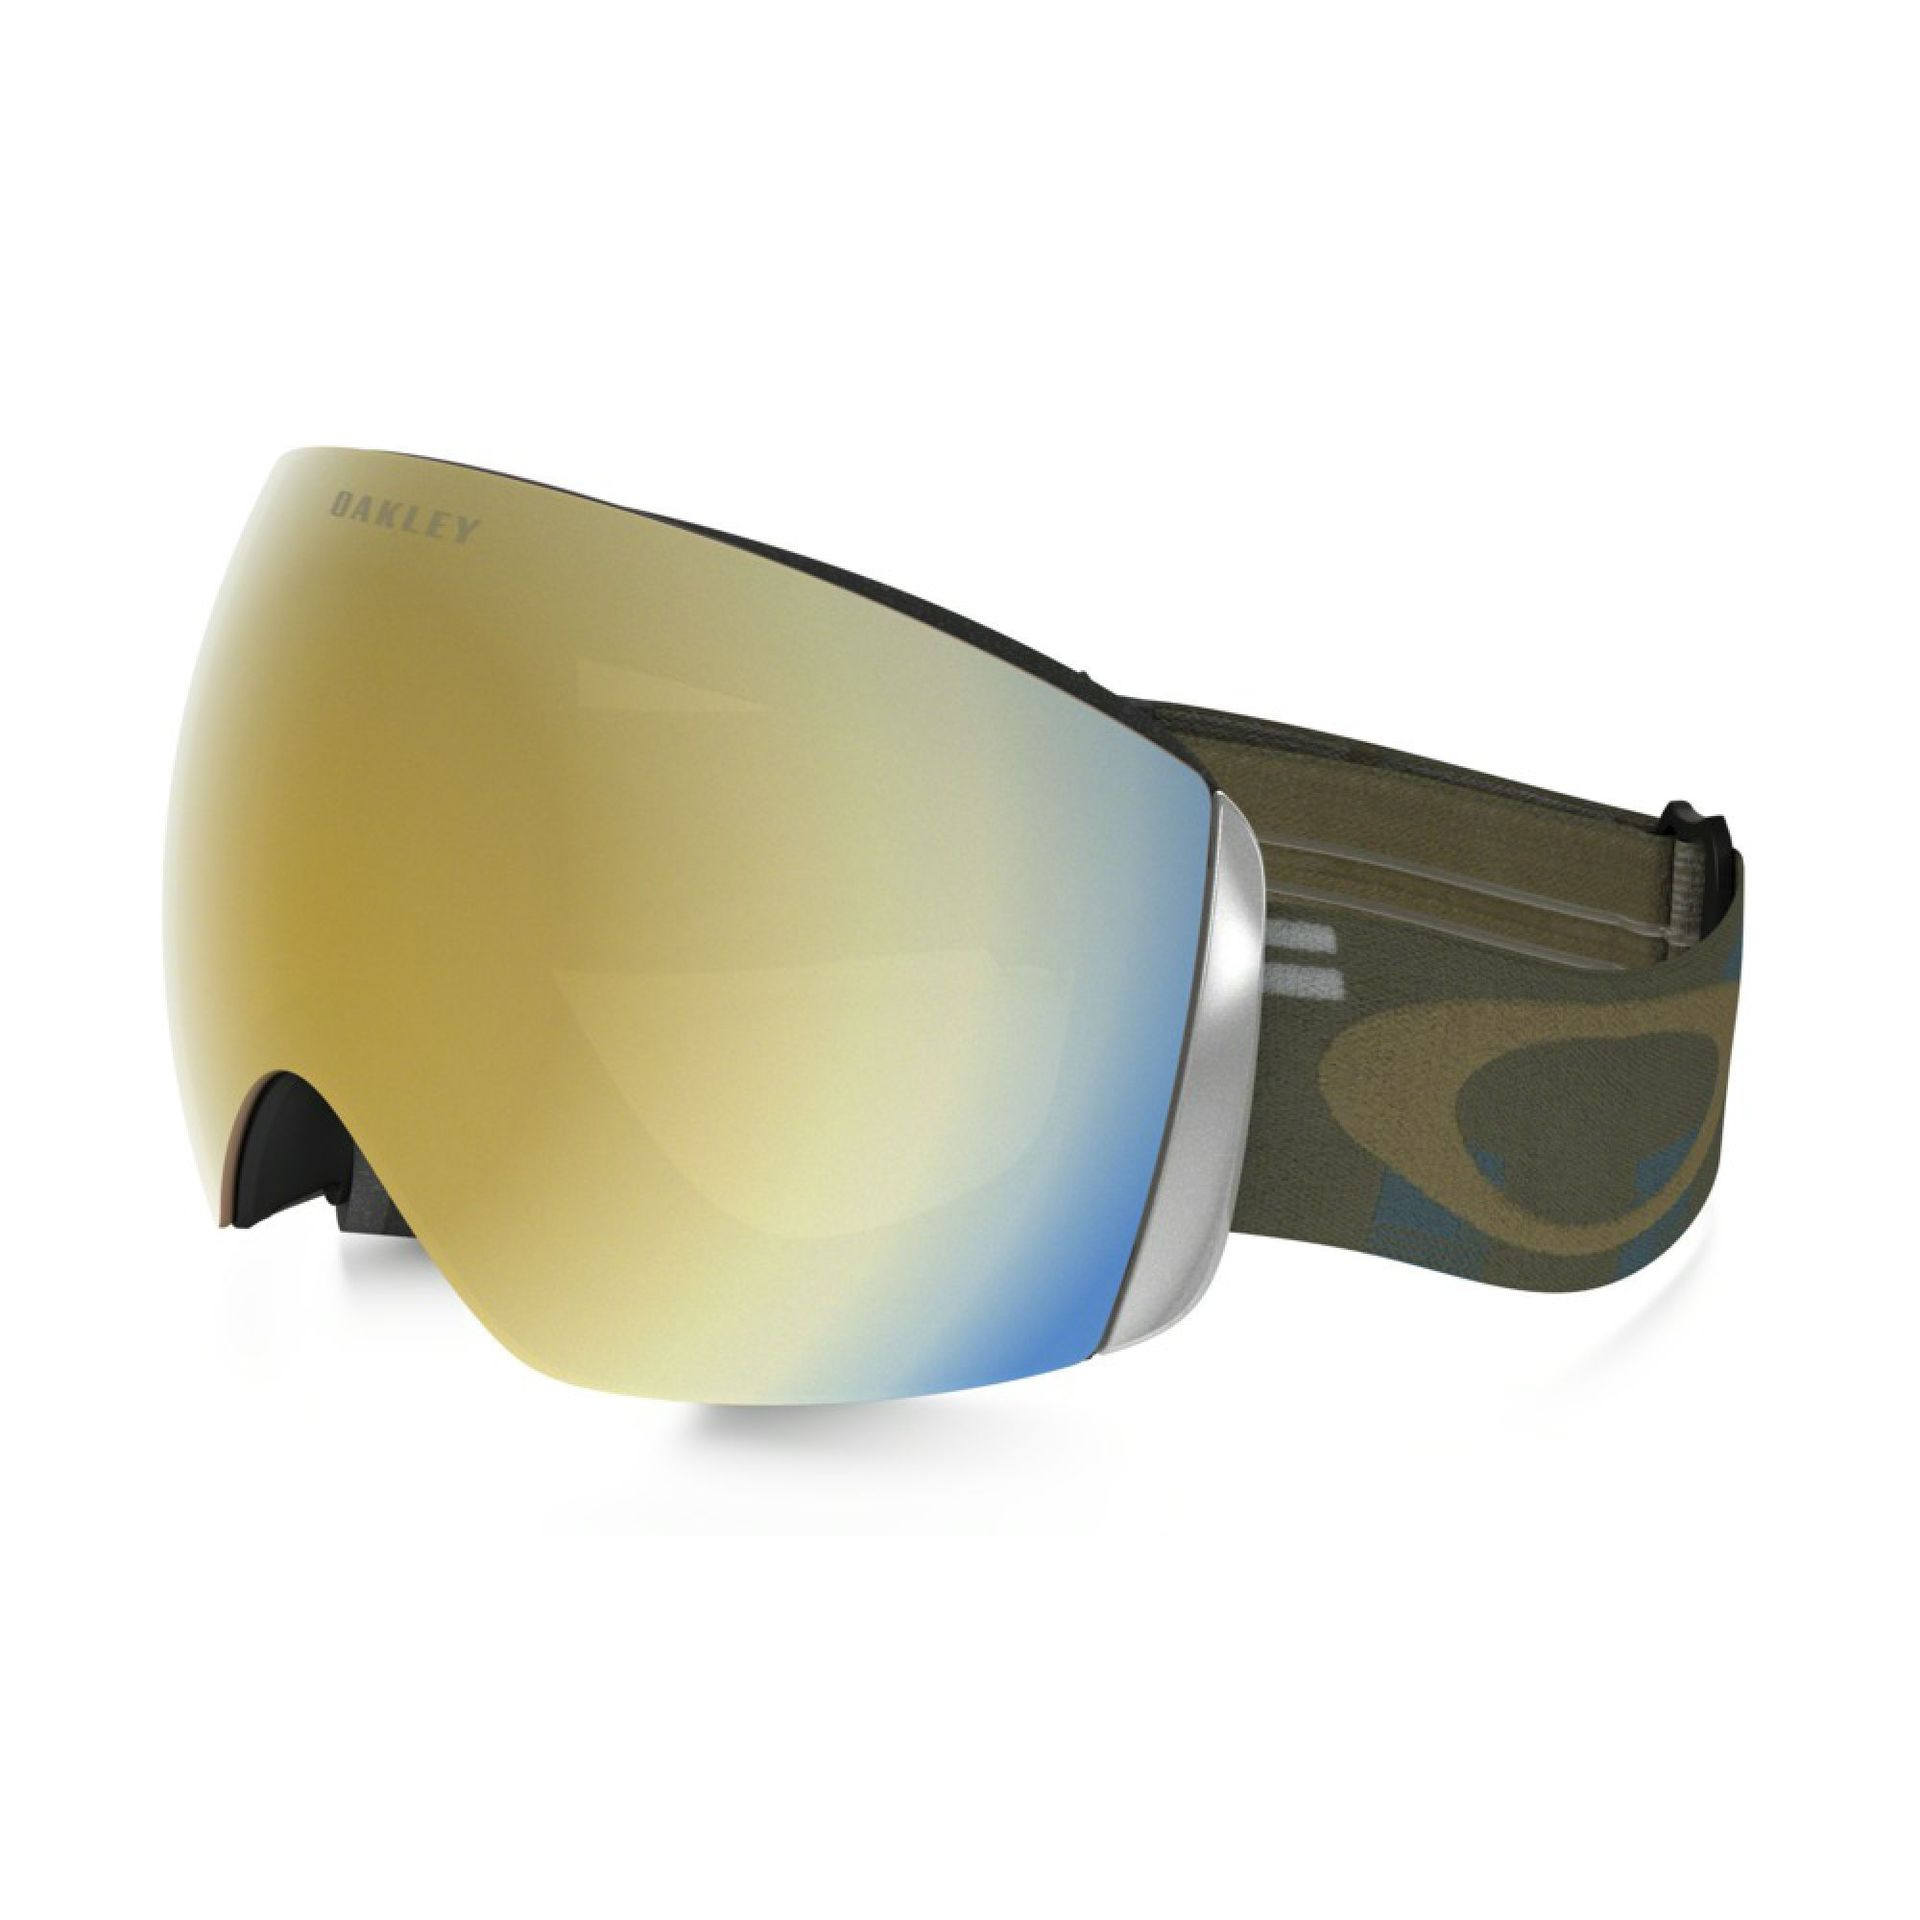 GOGLE OAKLEY FLIGHT DECK  DISRUPTIVE BLUE COPPER 24K IRIDIUM